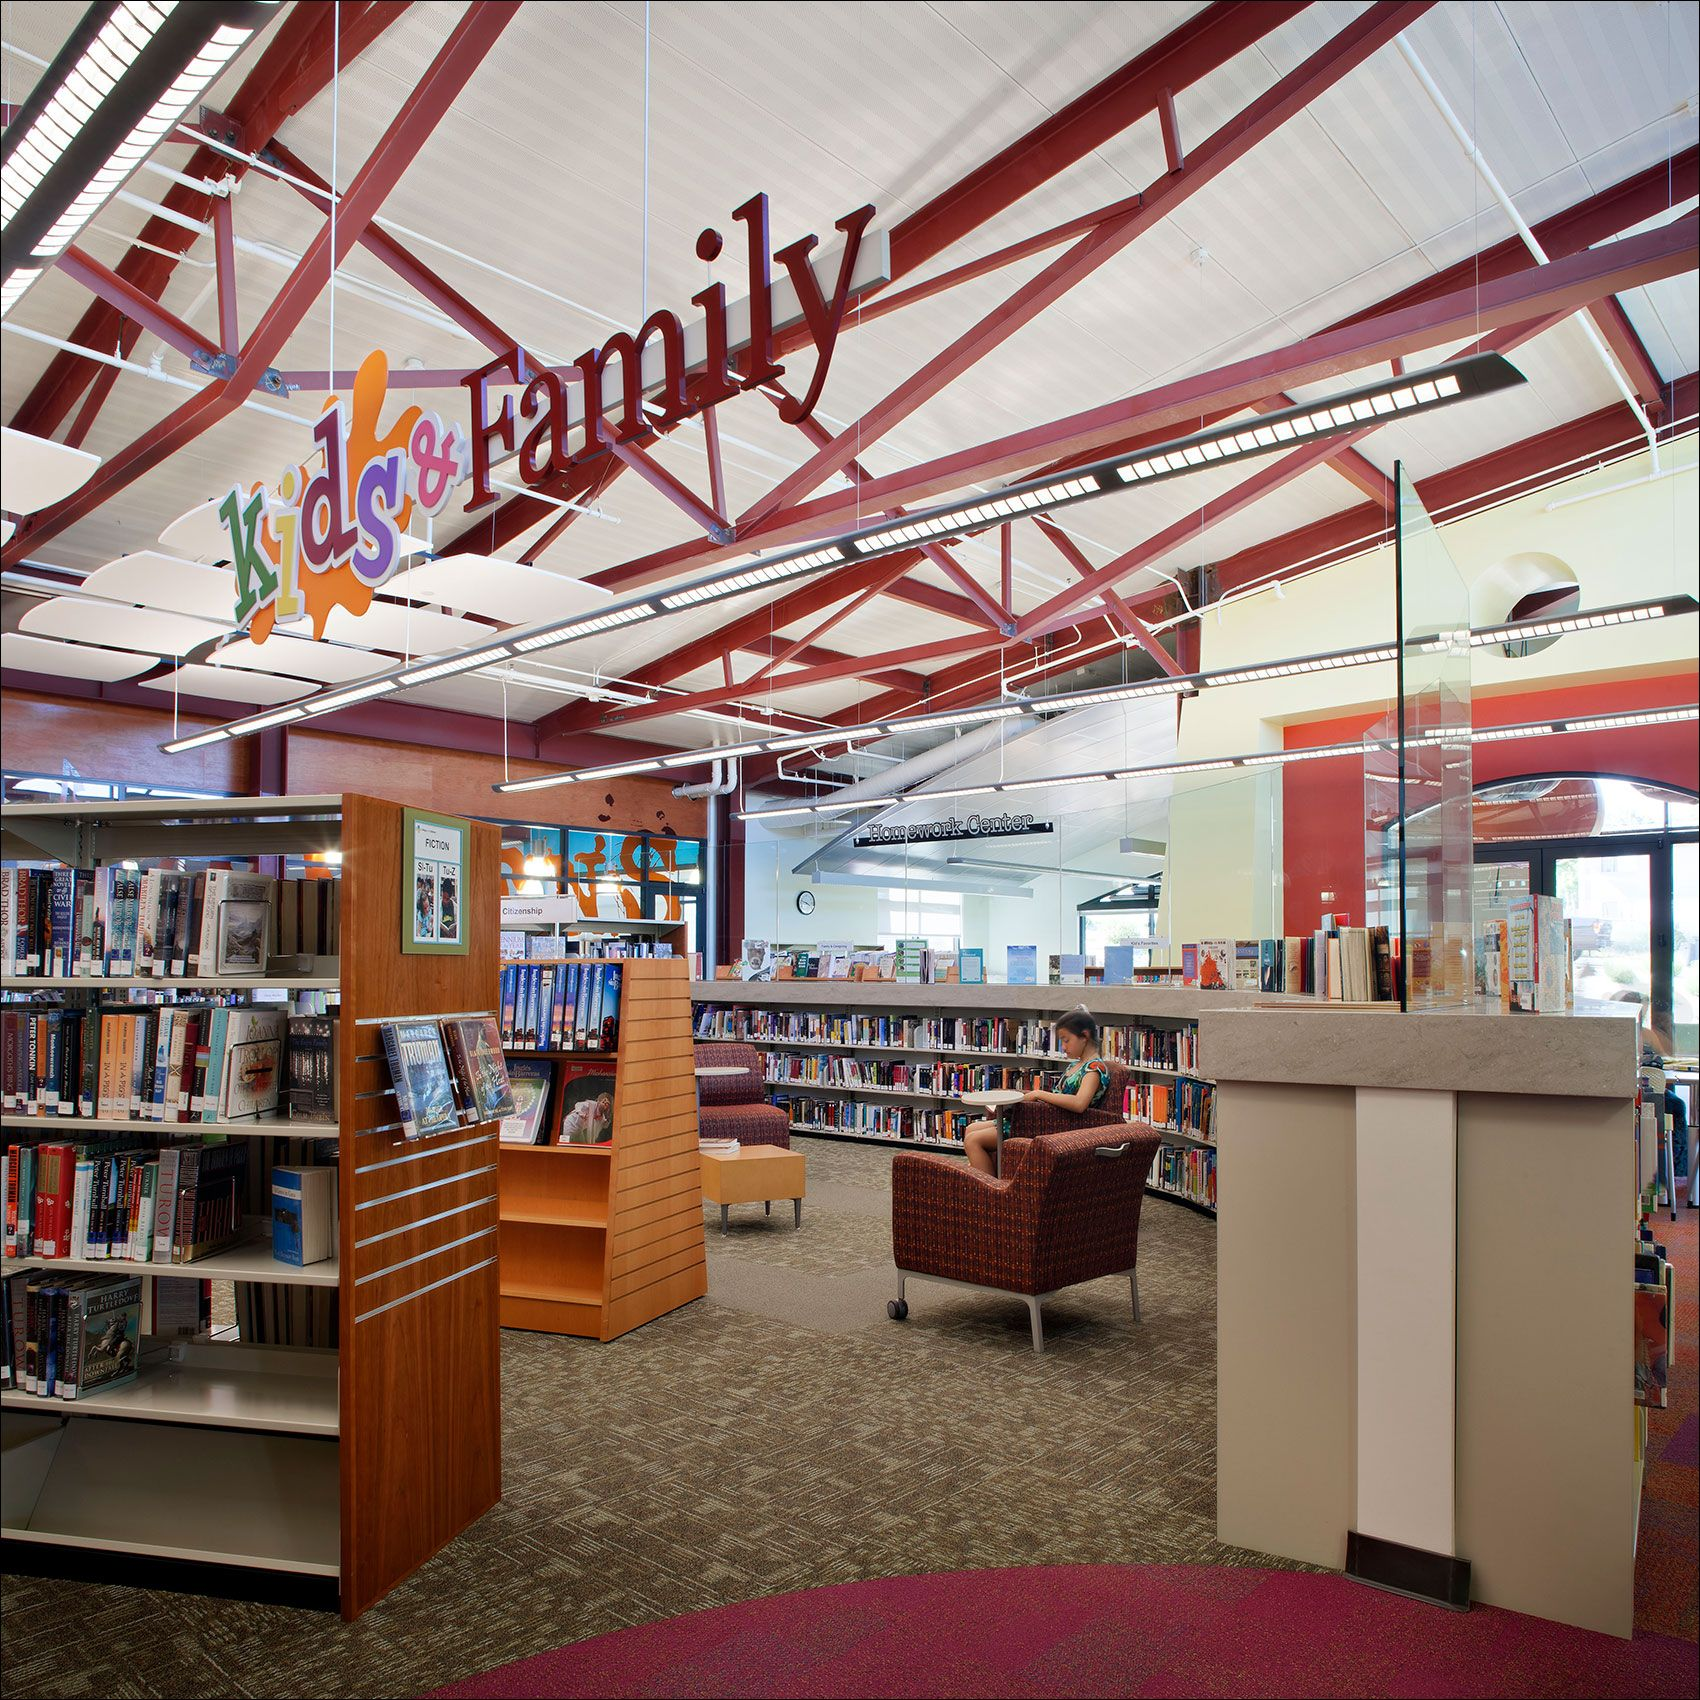 SanDiego_Library_FPBArchitects_InteriorPhotography.jpg